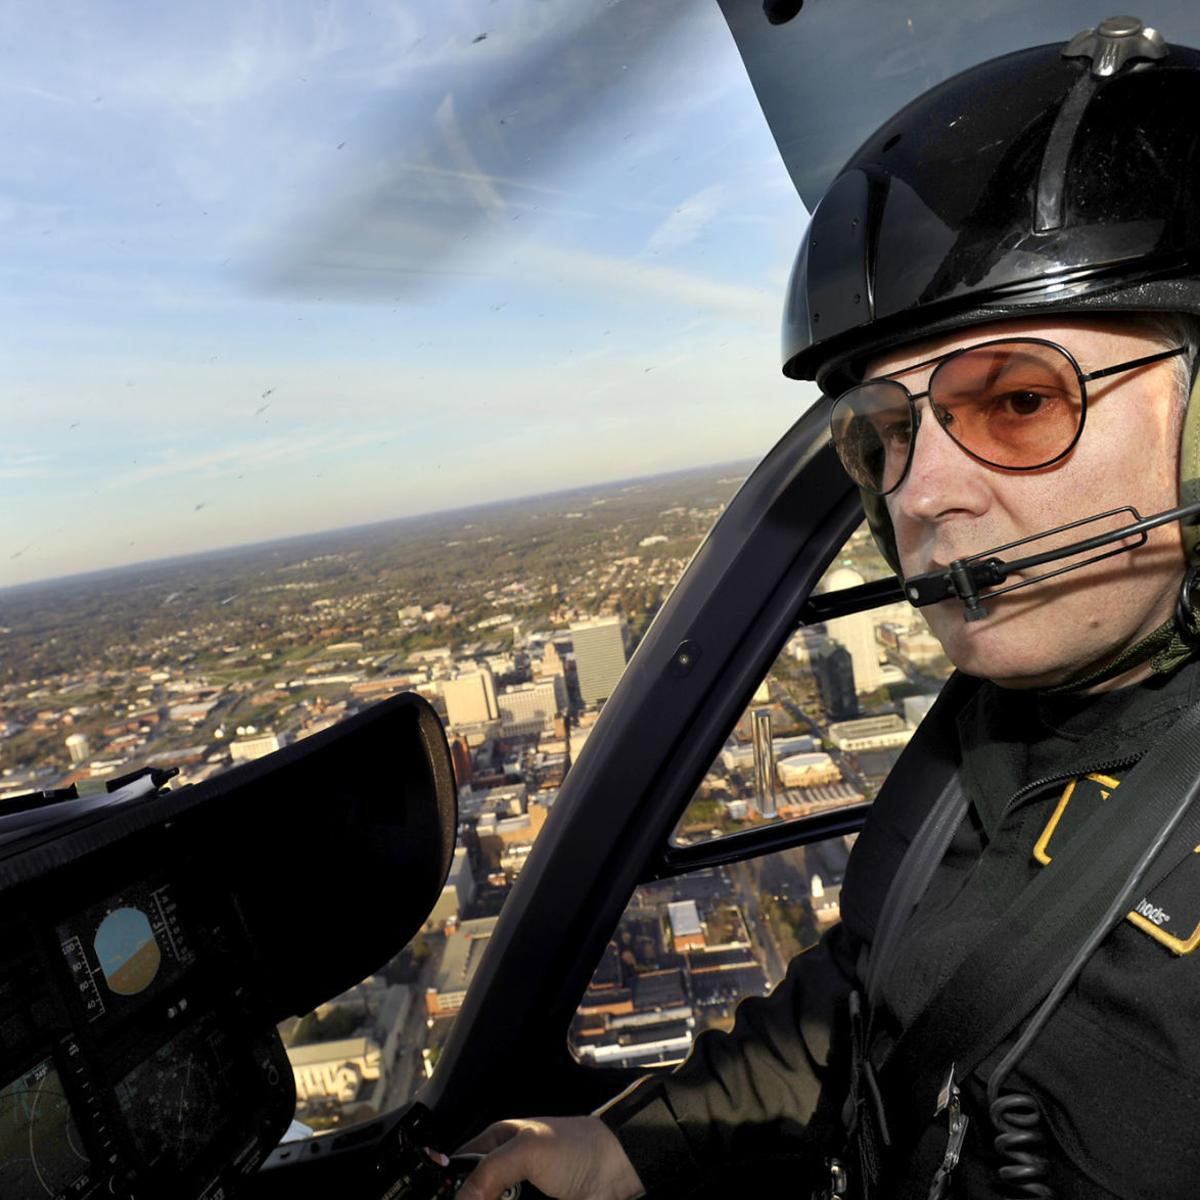 Pilot who crashed in Rowan County was former pilot for